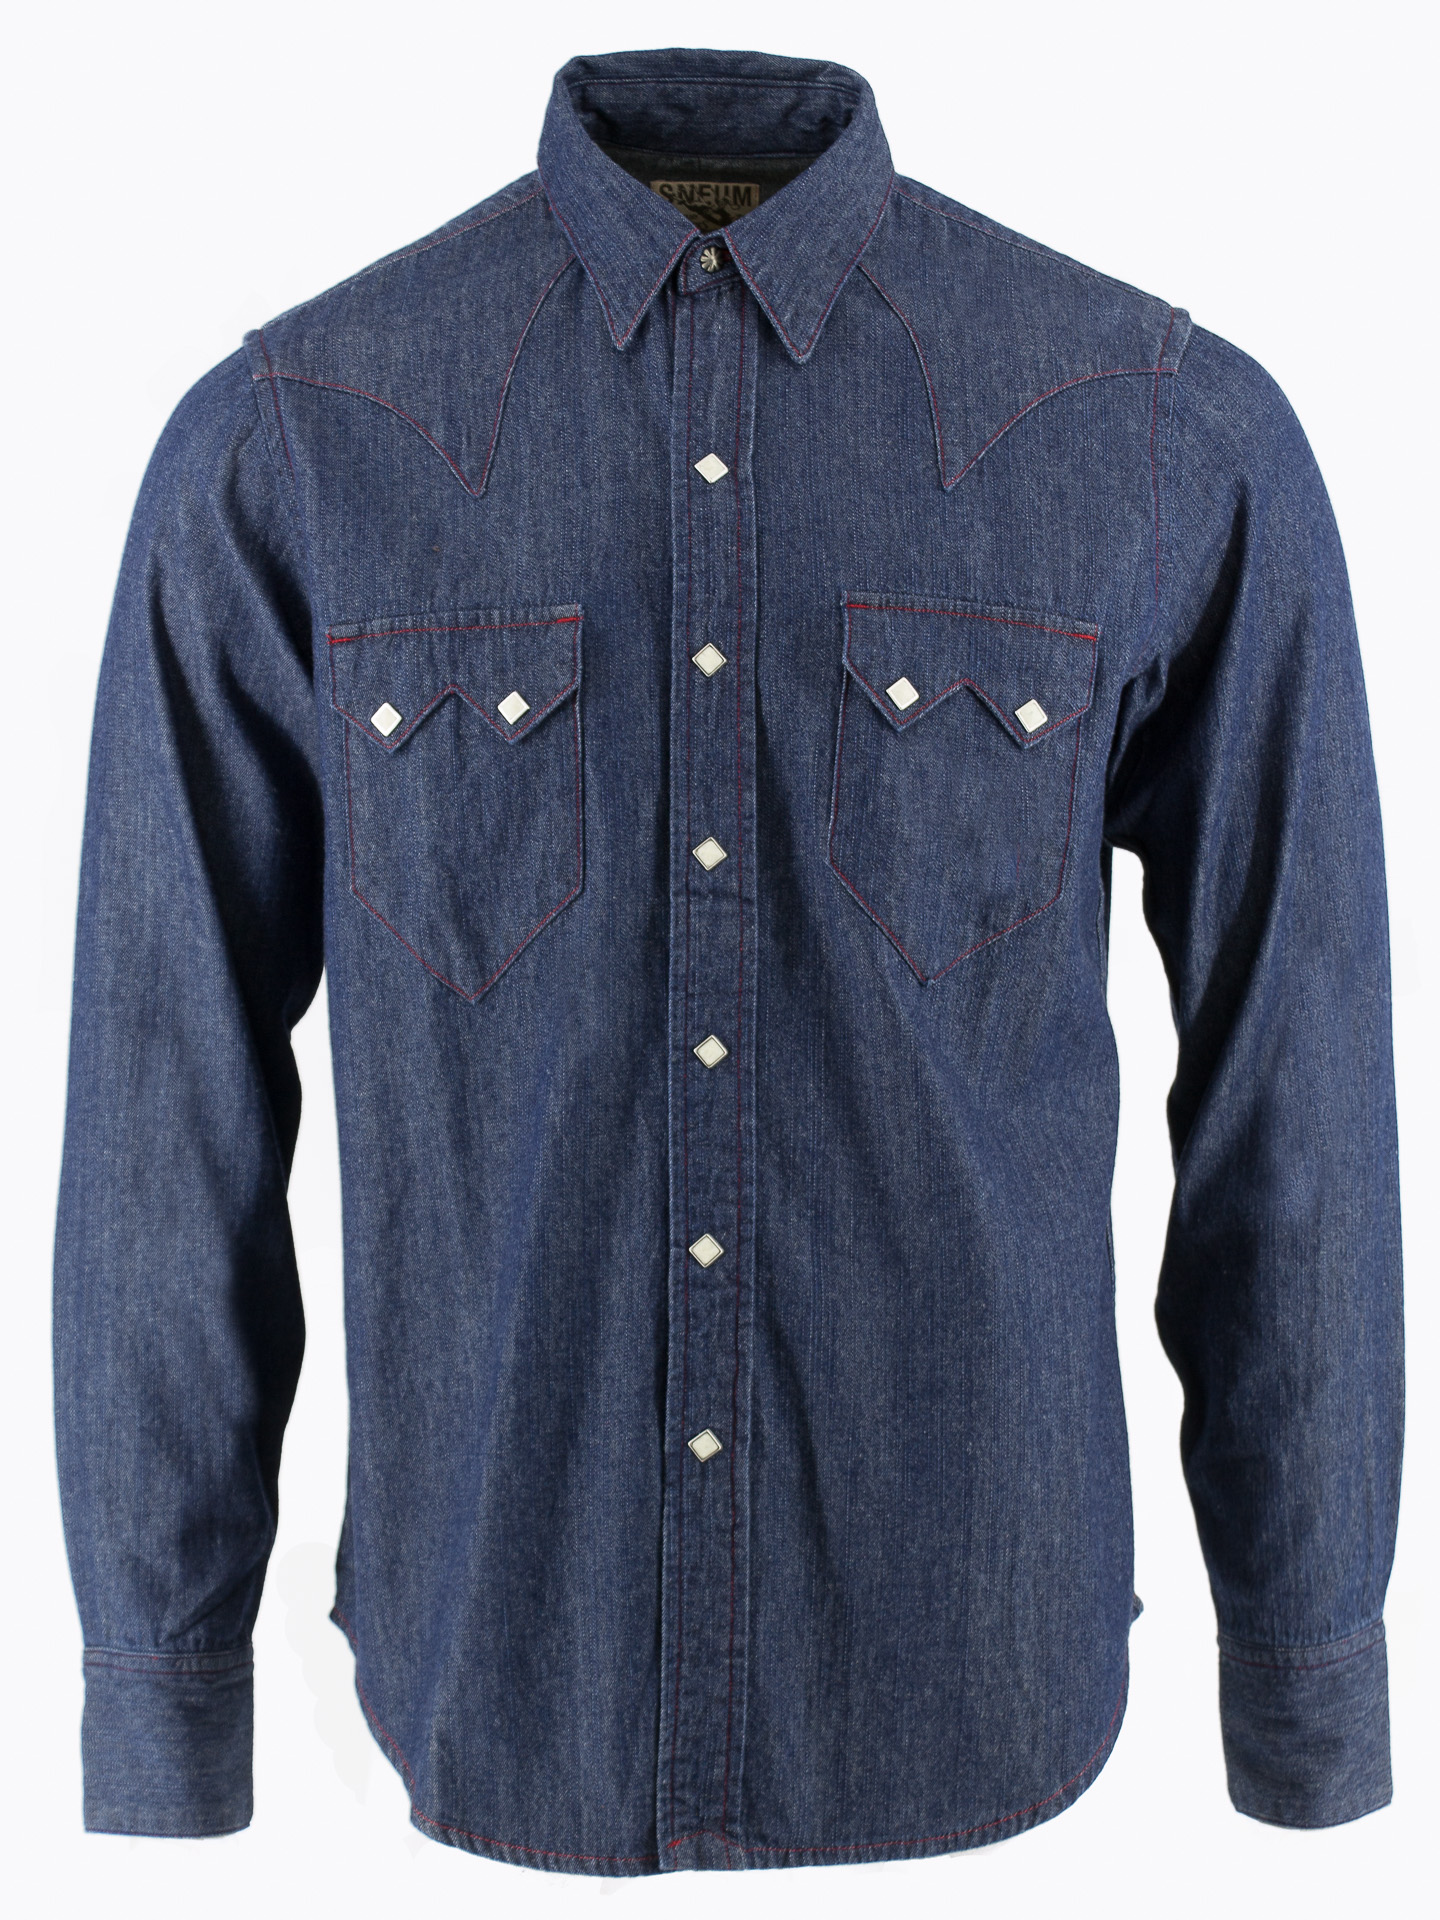 Sawtooth western denim